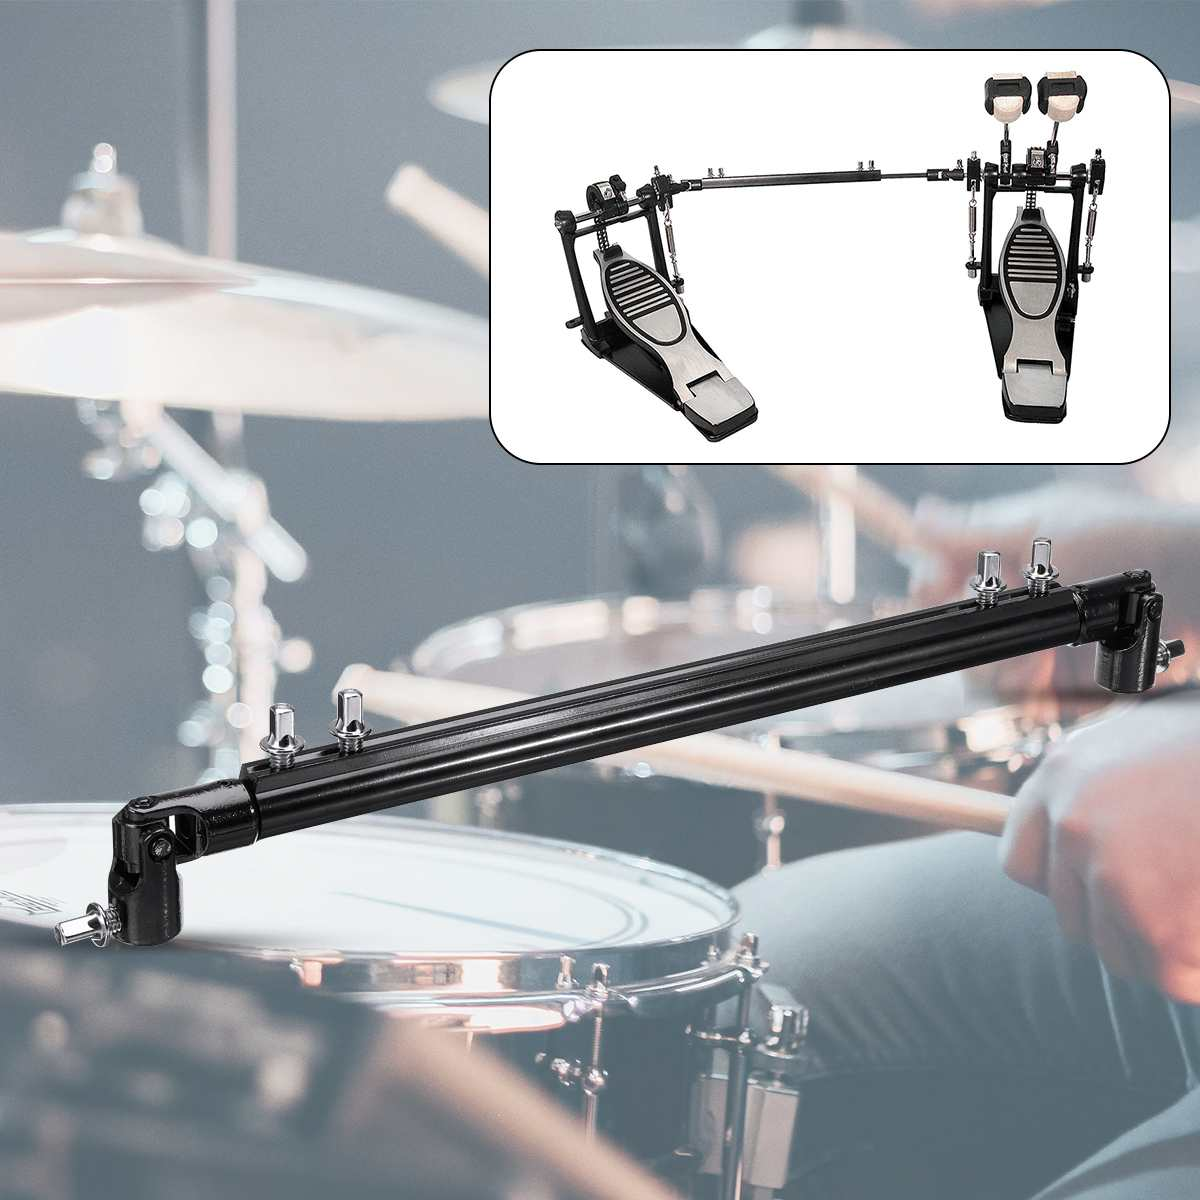 35cm Metal Double Bass Kick Drum Pedal Link Linkage Connecting Rod Driveshaft Bar Rod Black Double Pedal Drive Shaft